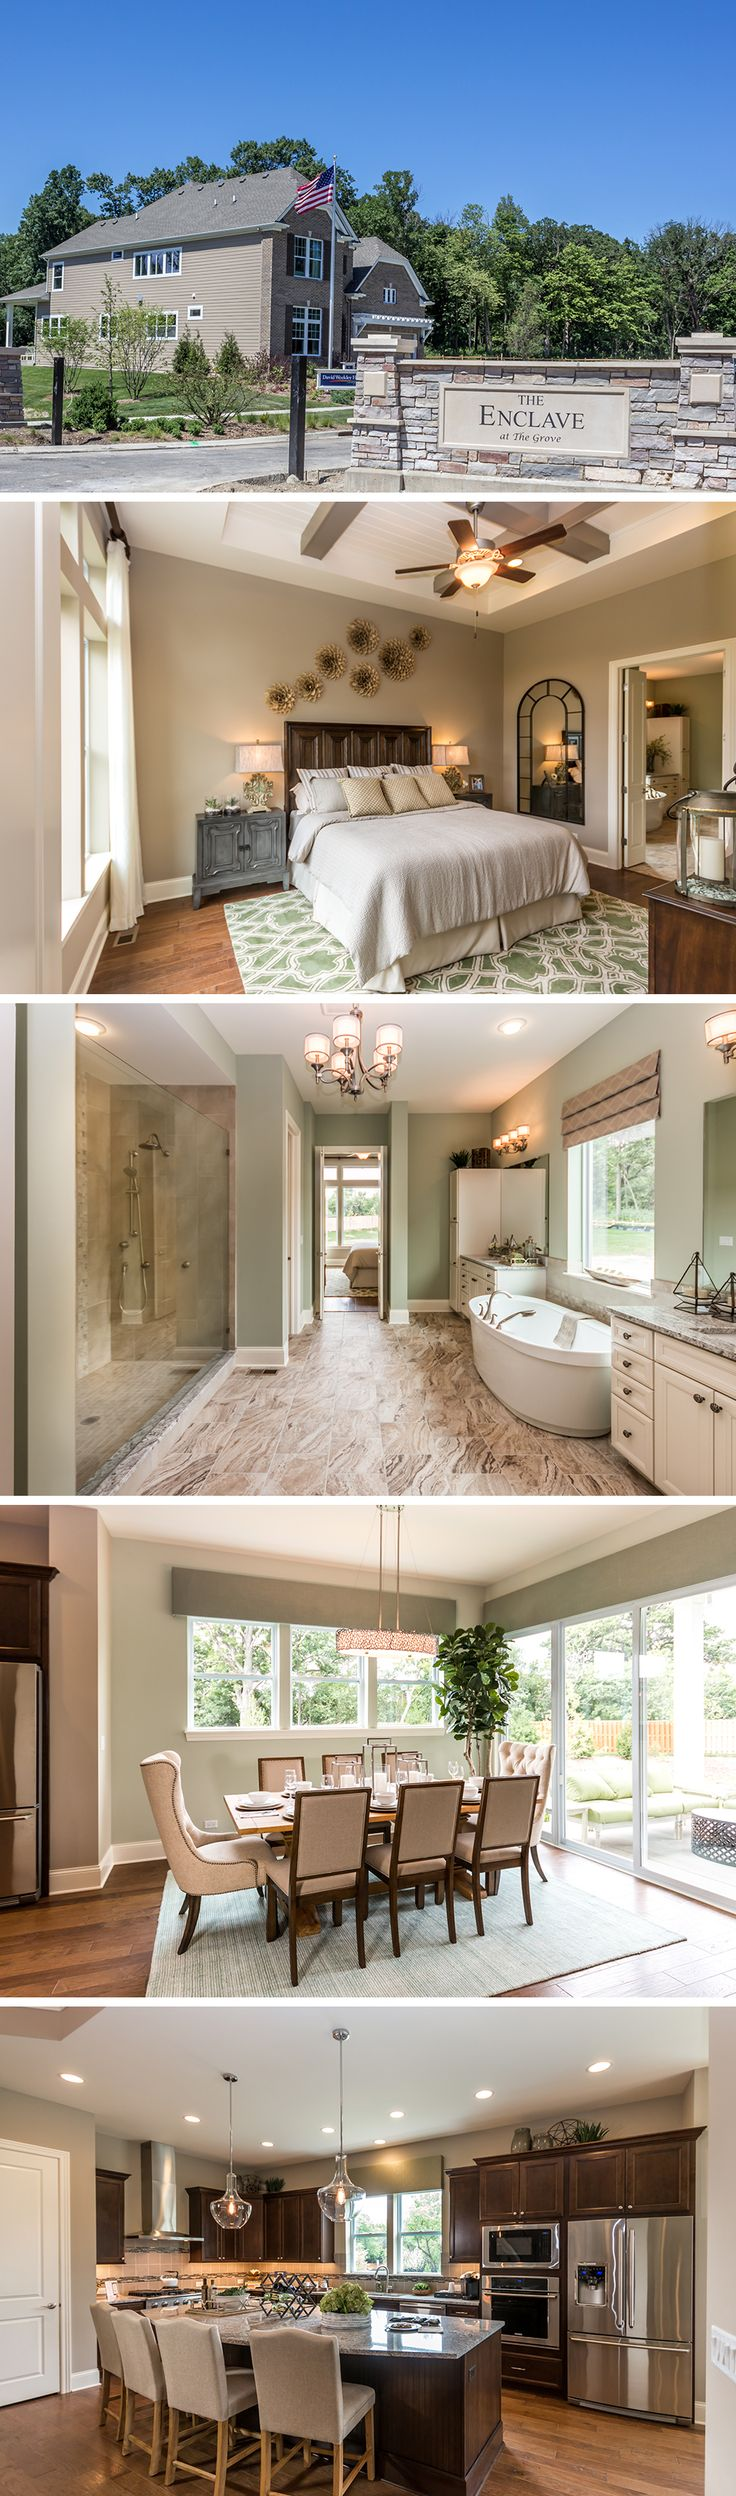 The martinwood by david weekley homes in enclave at the grove is a 4 bedroom home